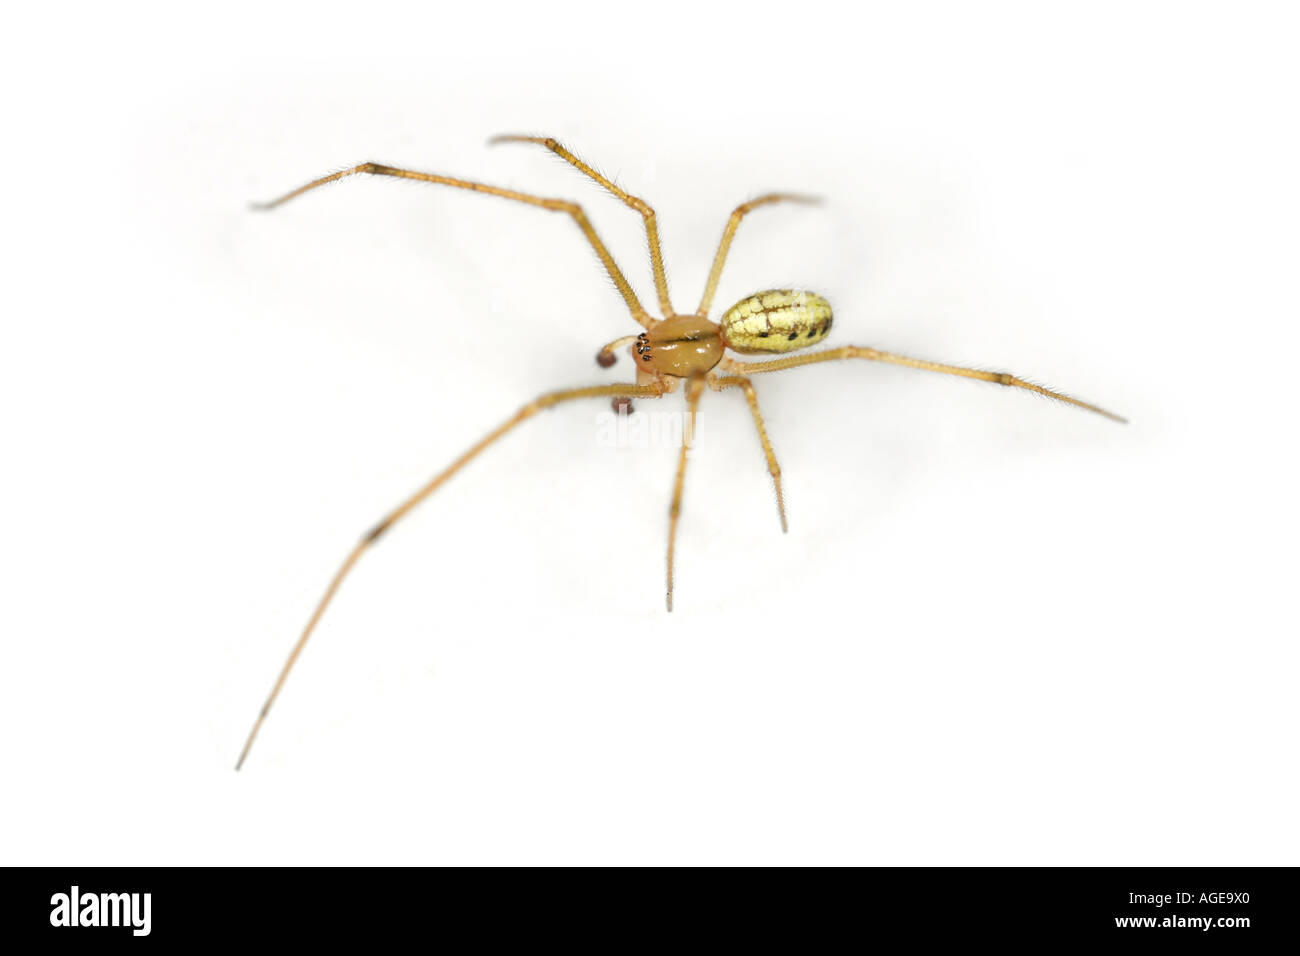 Enoplognata Ovata, a small Comb-footed spider with dark dots on the sides, this specimen has a yellow back body. Stock Photo